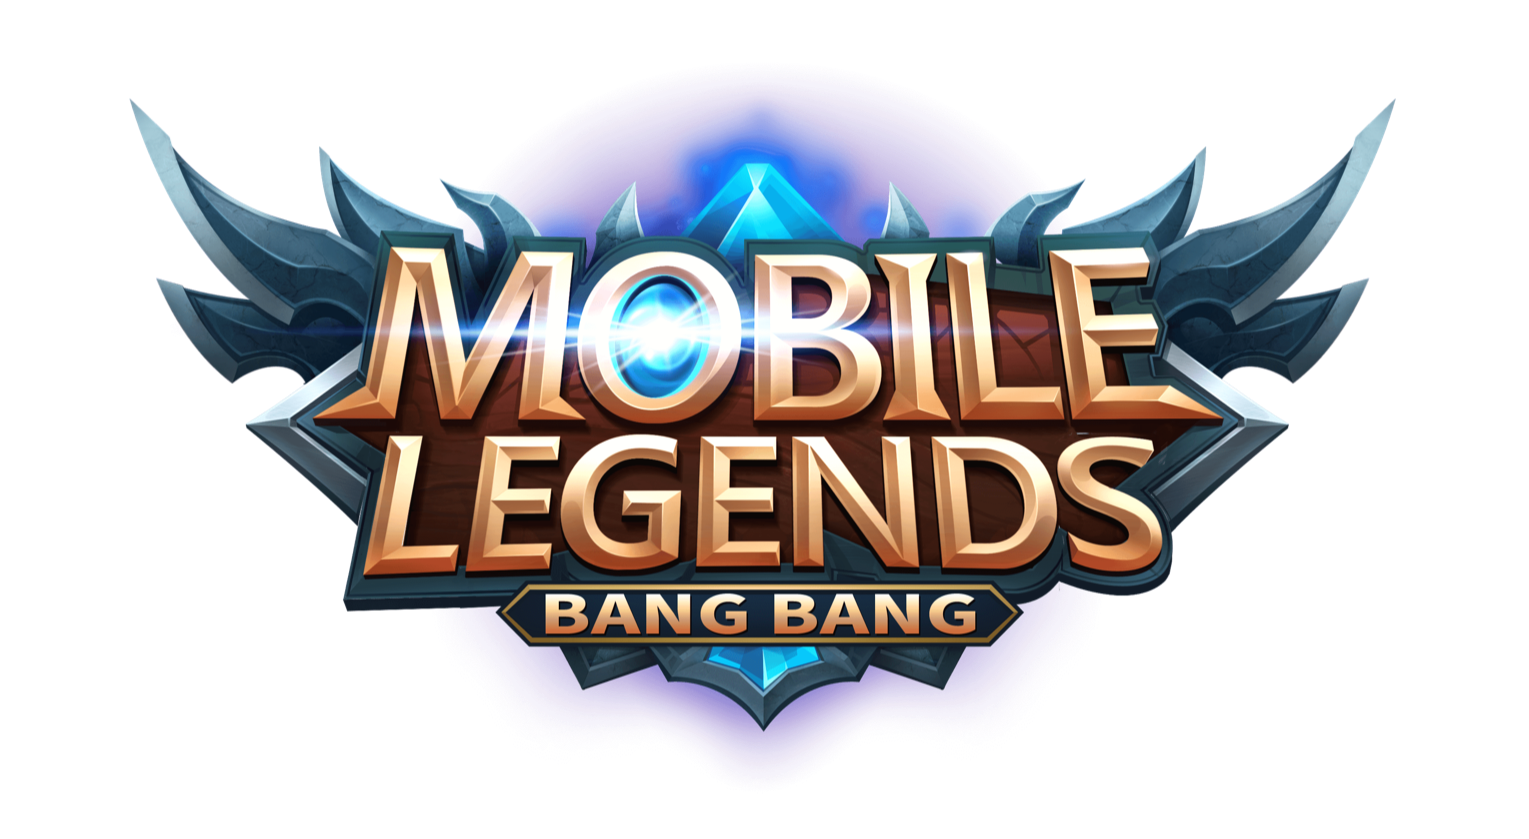 Game Online, eSports, Mobile Legends, irfan-room.com